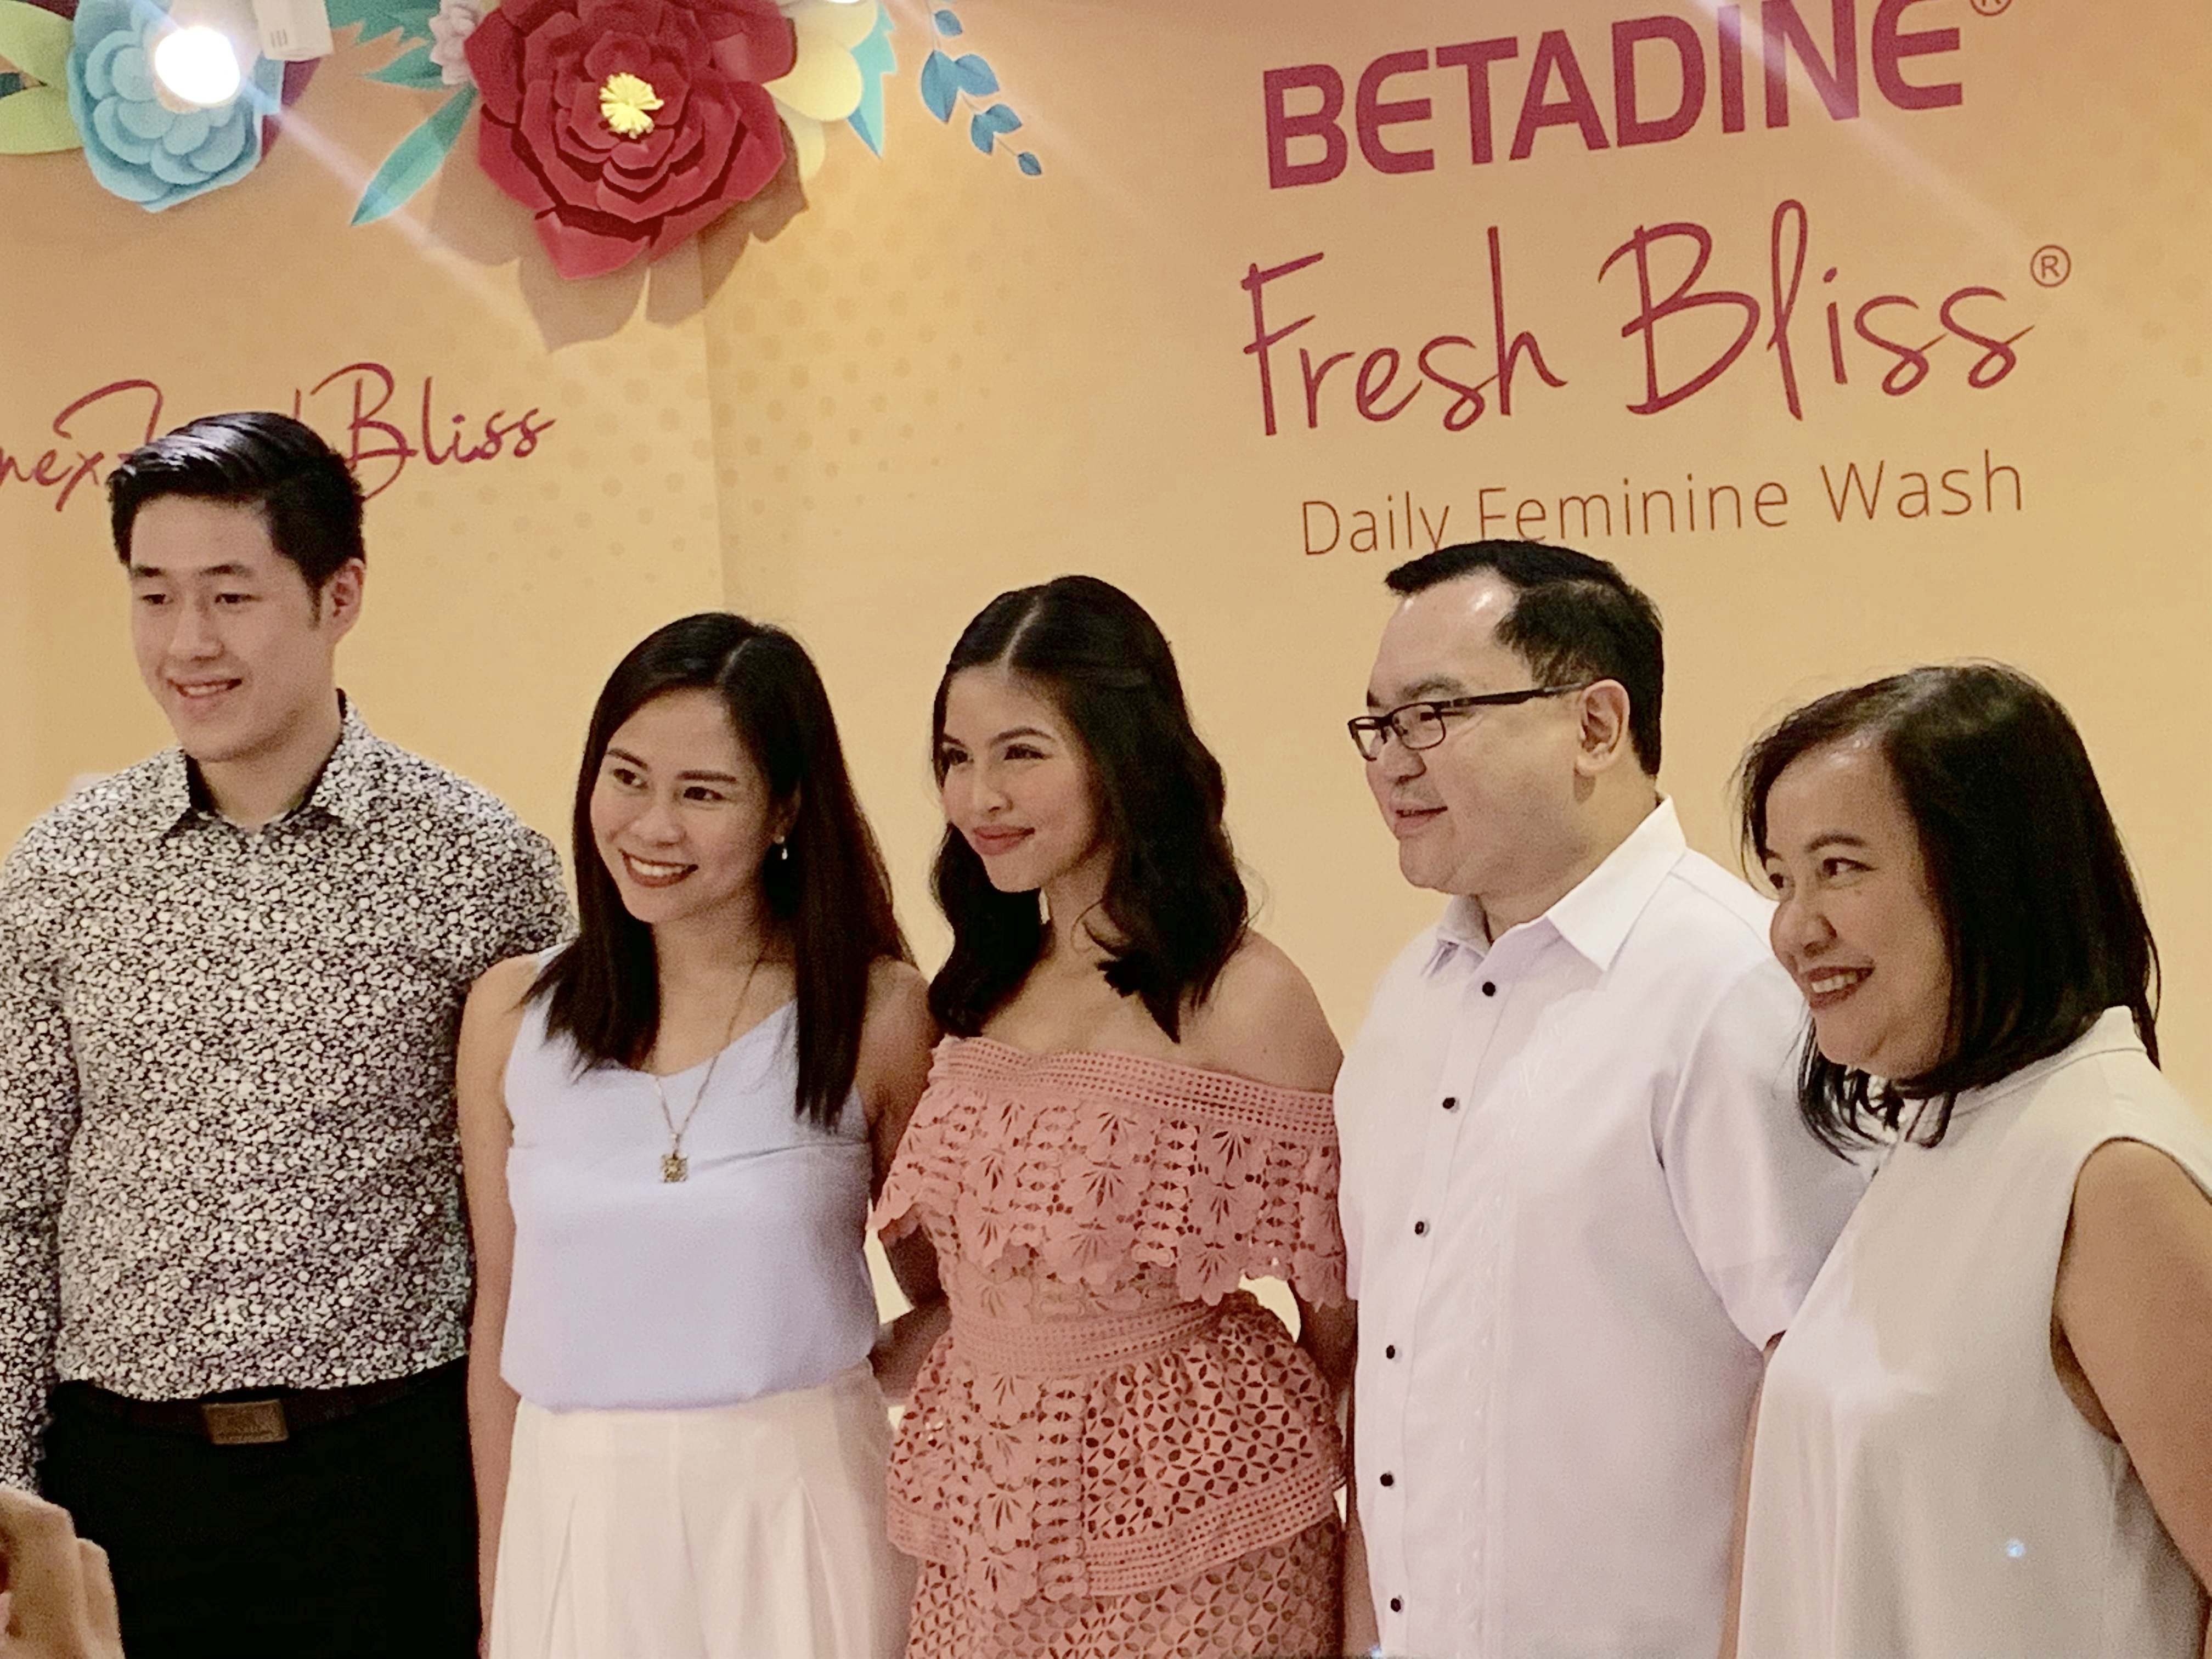 Maine Mendoza for Betadine Fresh Bliss